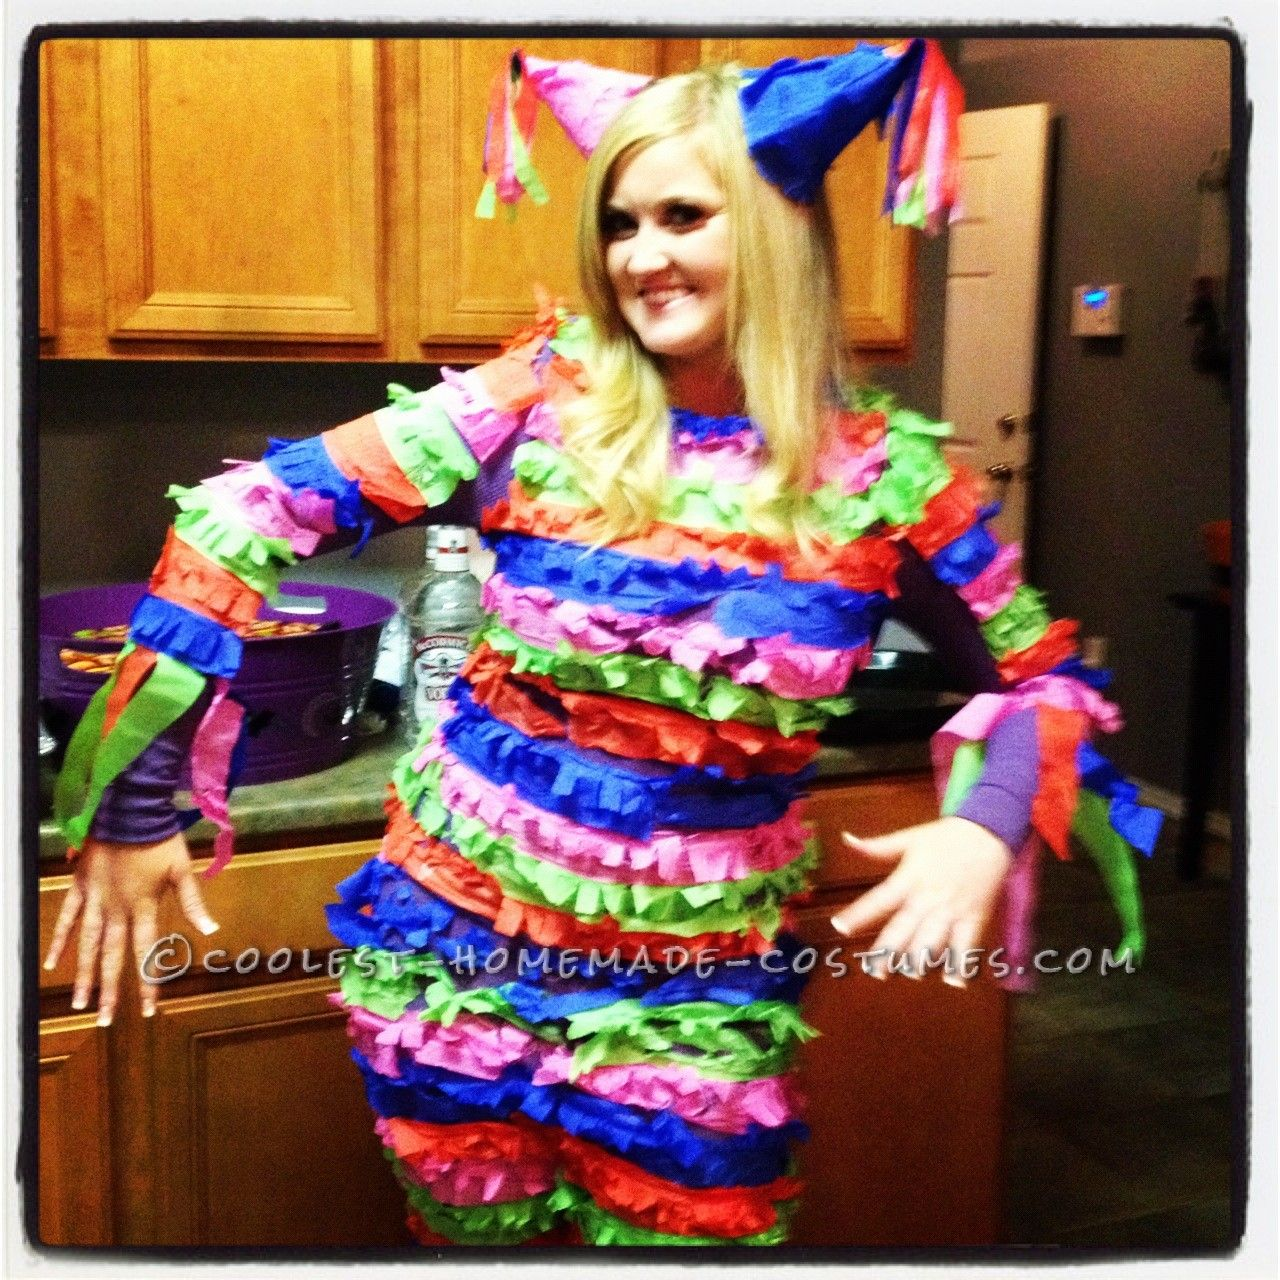 best homemade pinata costume for a woman | coolest homemade costumes